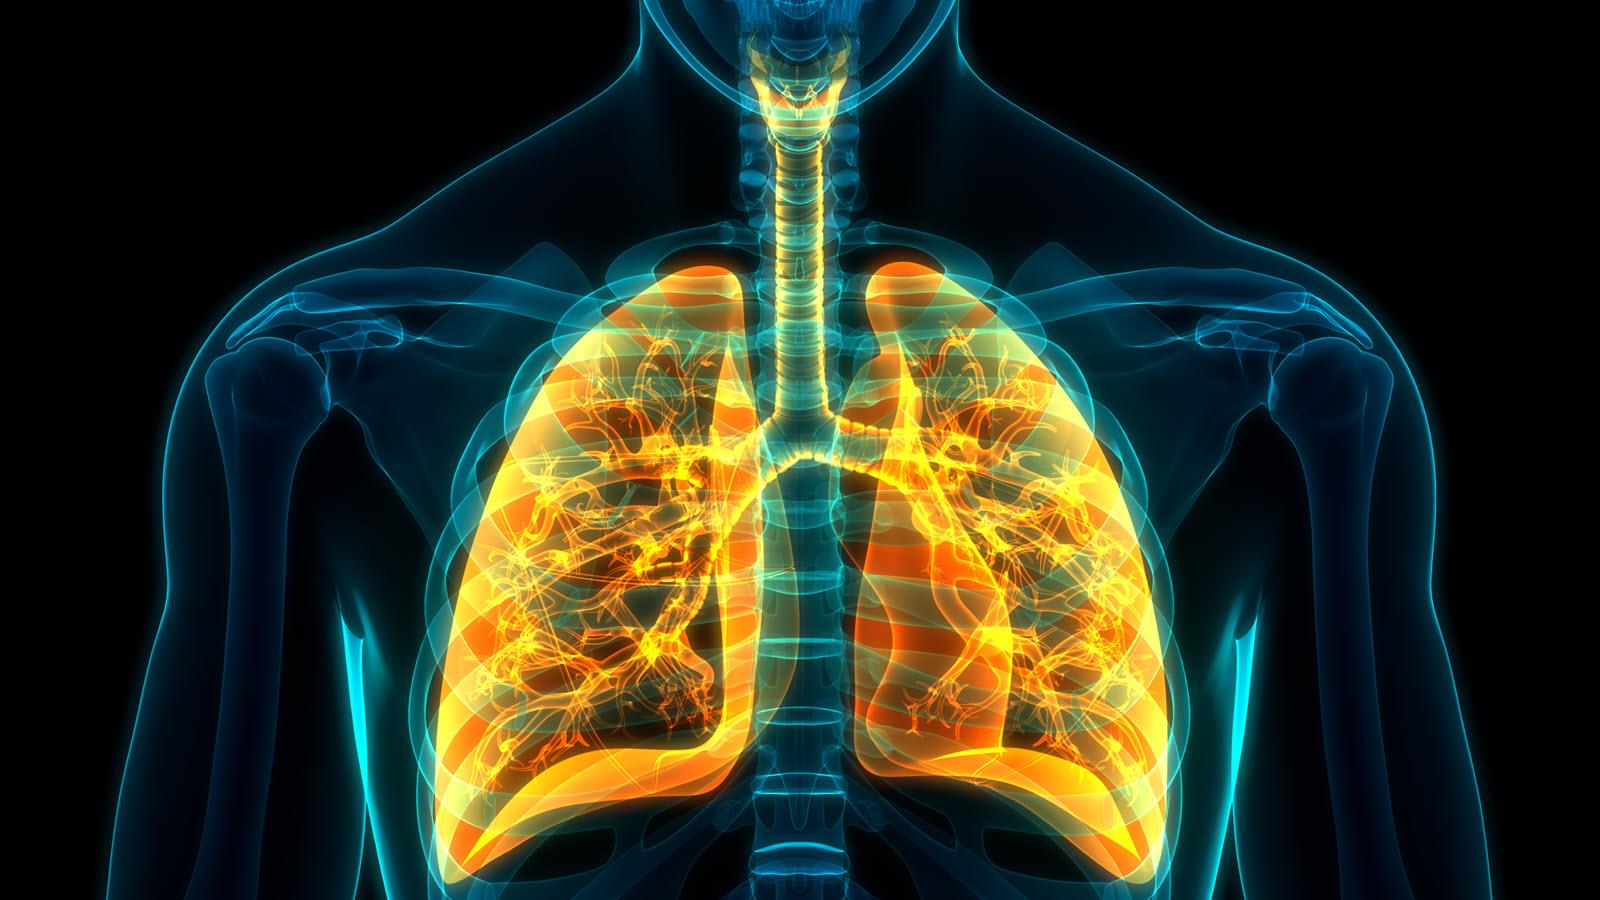 lungs highlighted in yellow on human torso